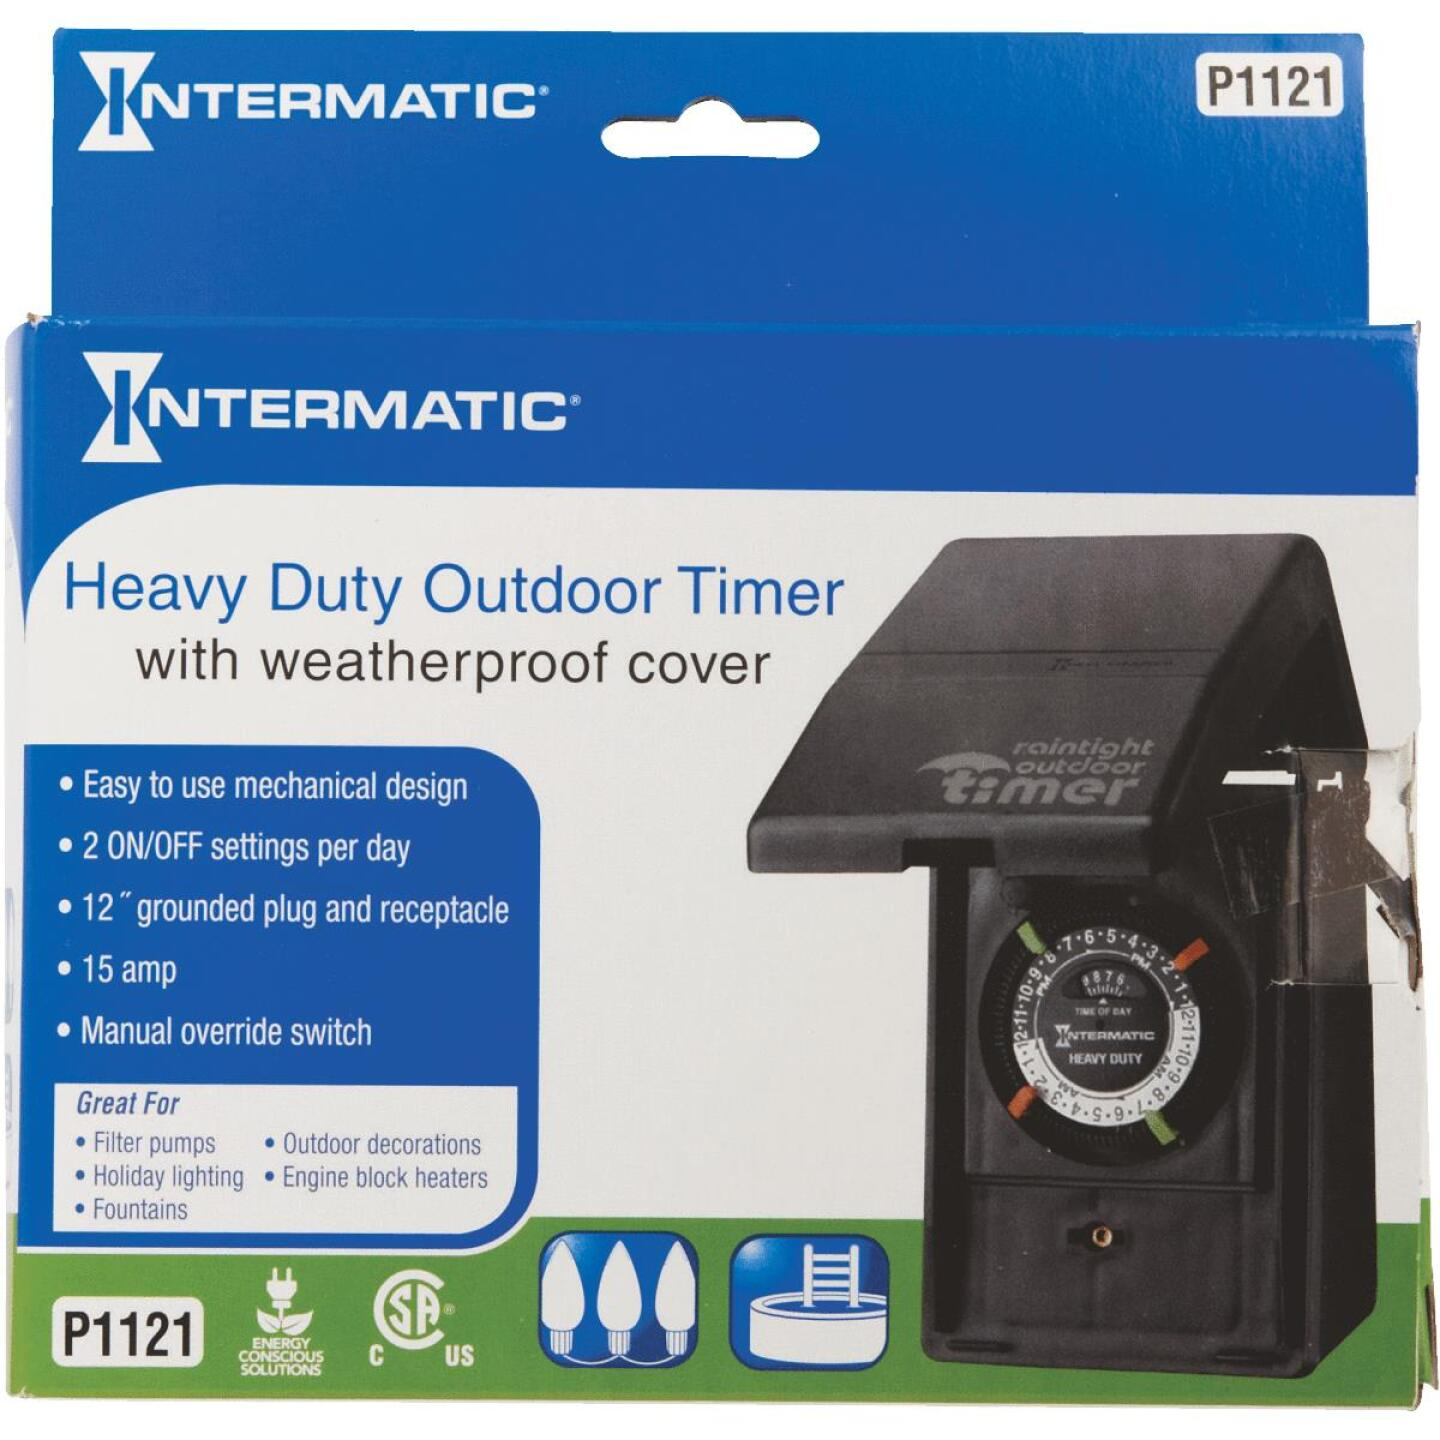 Intermatic 15A Resistive Or Tungsten 120V 1800W Black Plug-In Outdoor Timer Image 2